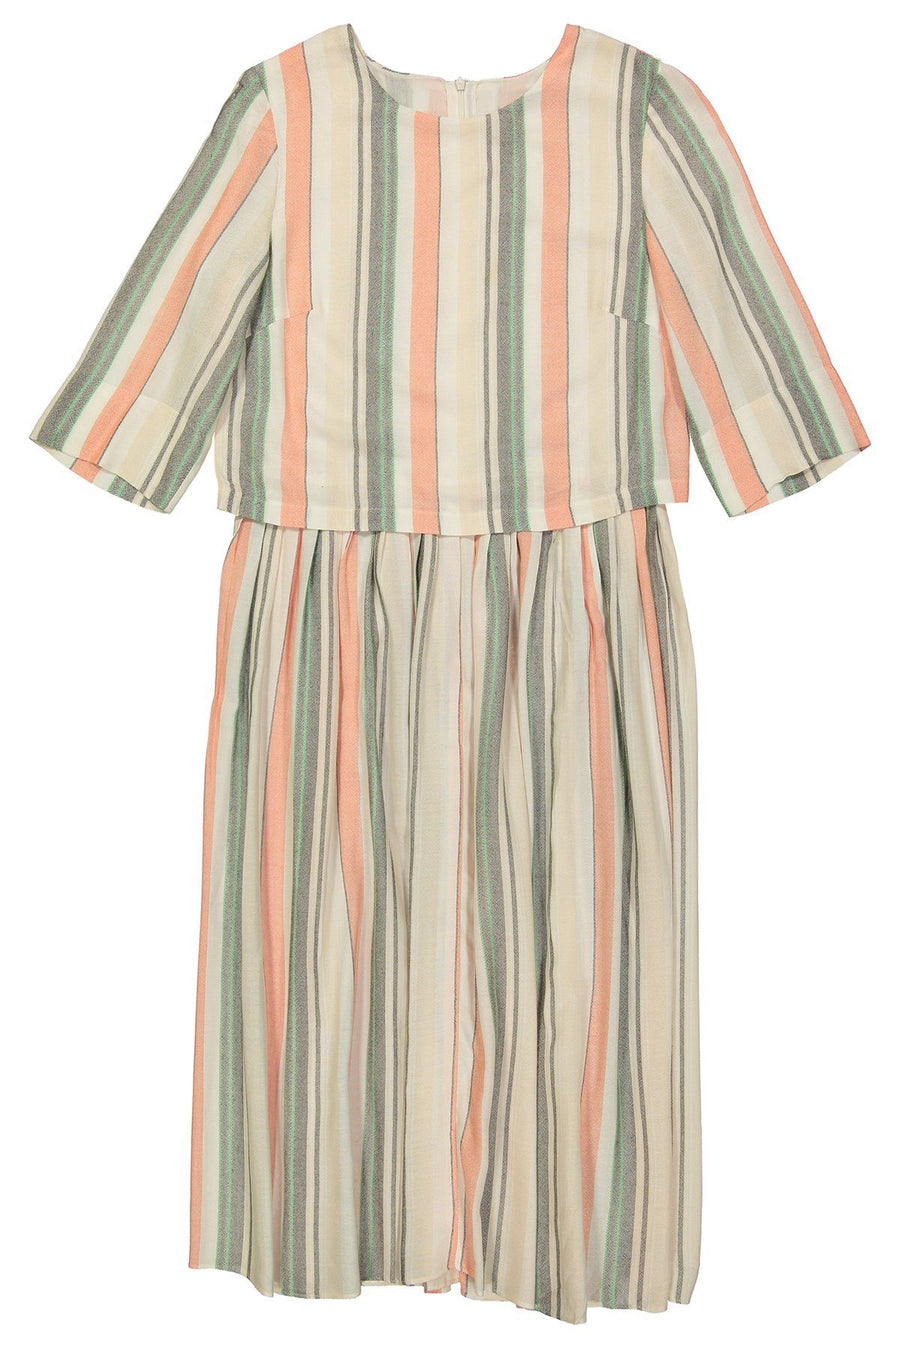 HEIRLOOM - Mint/Blush/Grey/Ivory Stripe Rayon - PROJECT 6, modest fashion